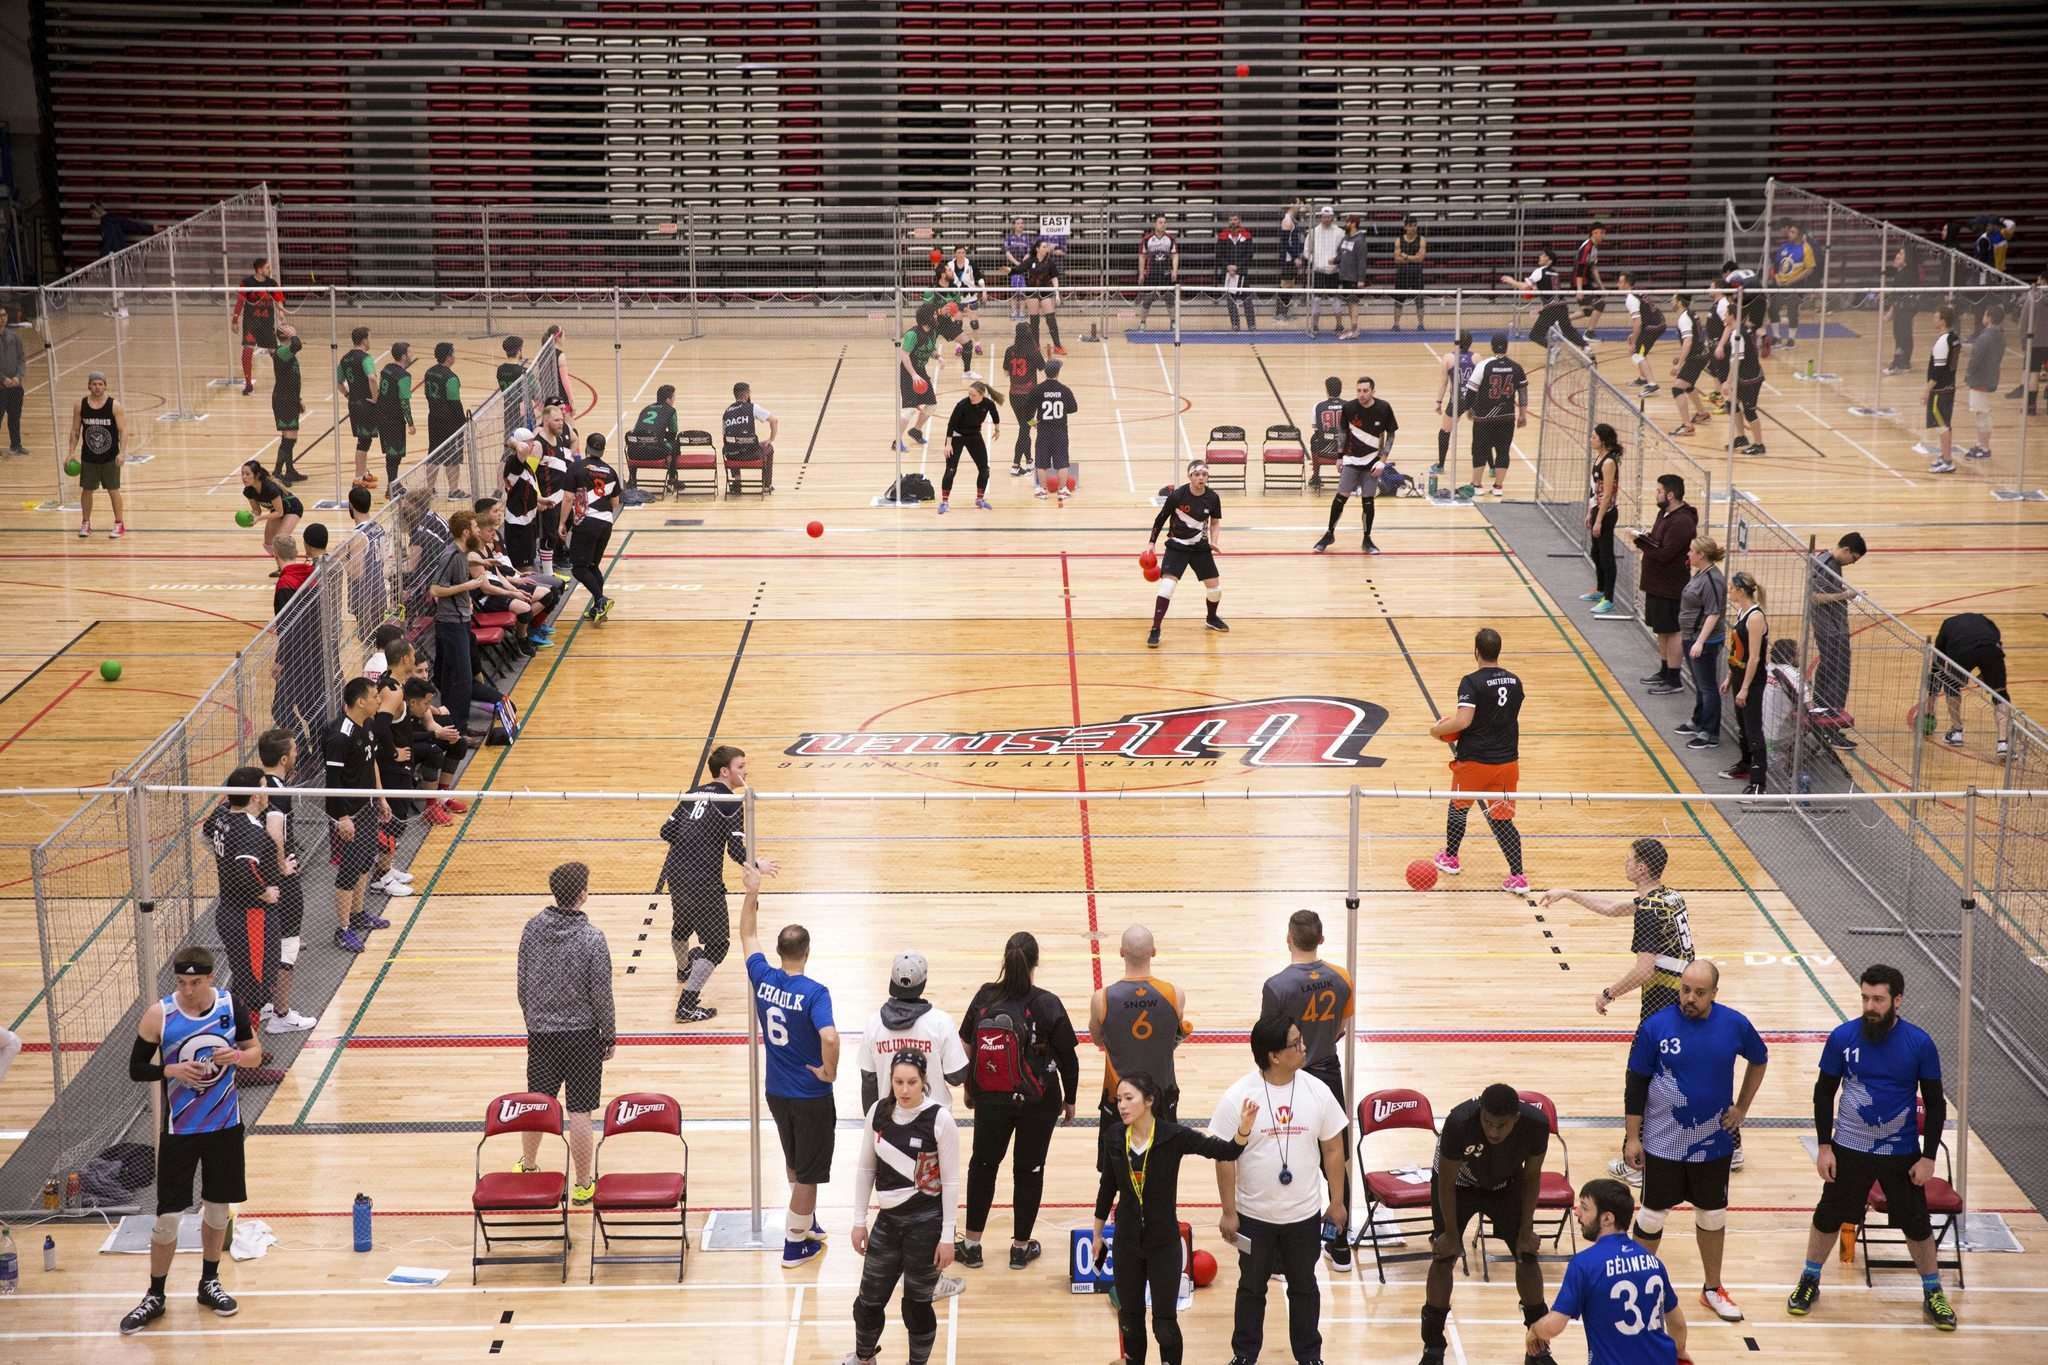 MIKAELA MACKENZIE / WINNIPEG FREE PRESS</p><p>Patricipants face each other on the court, while others watch or take part in drills during the National Dodgeball Tryout and Tournament at the Duckworth Centre Friday.</p>